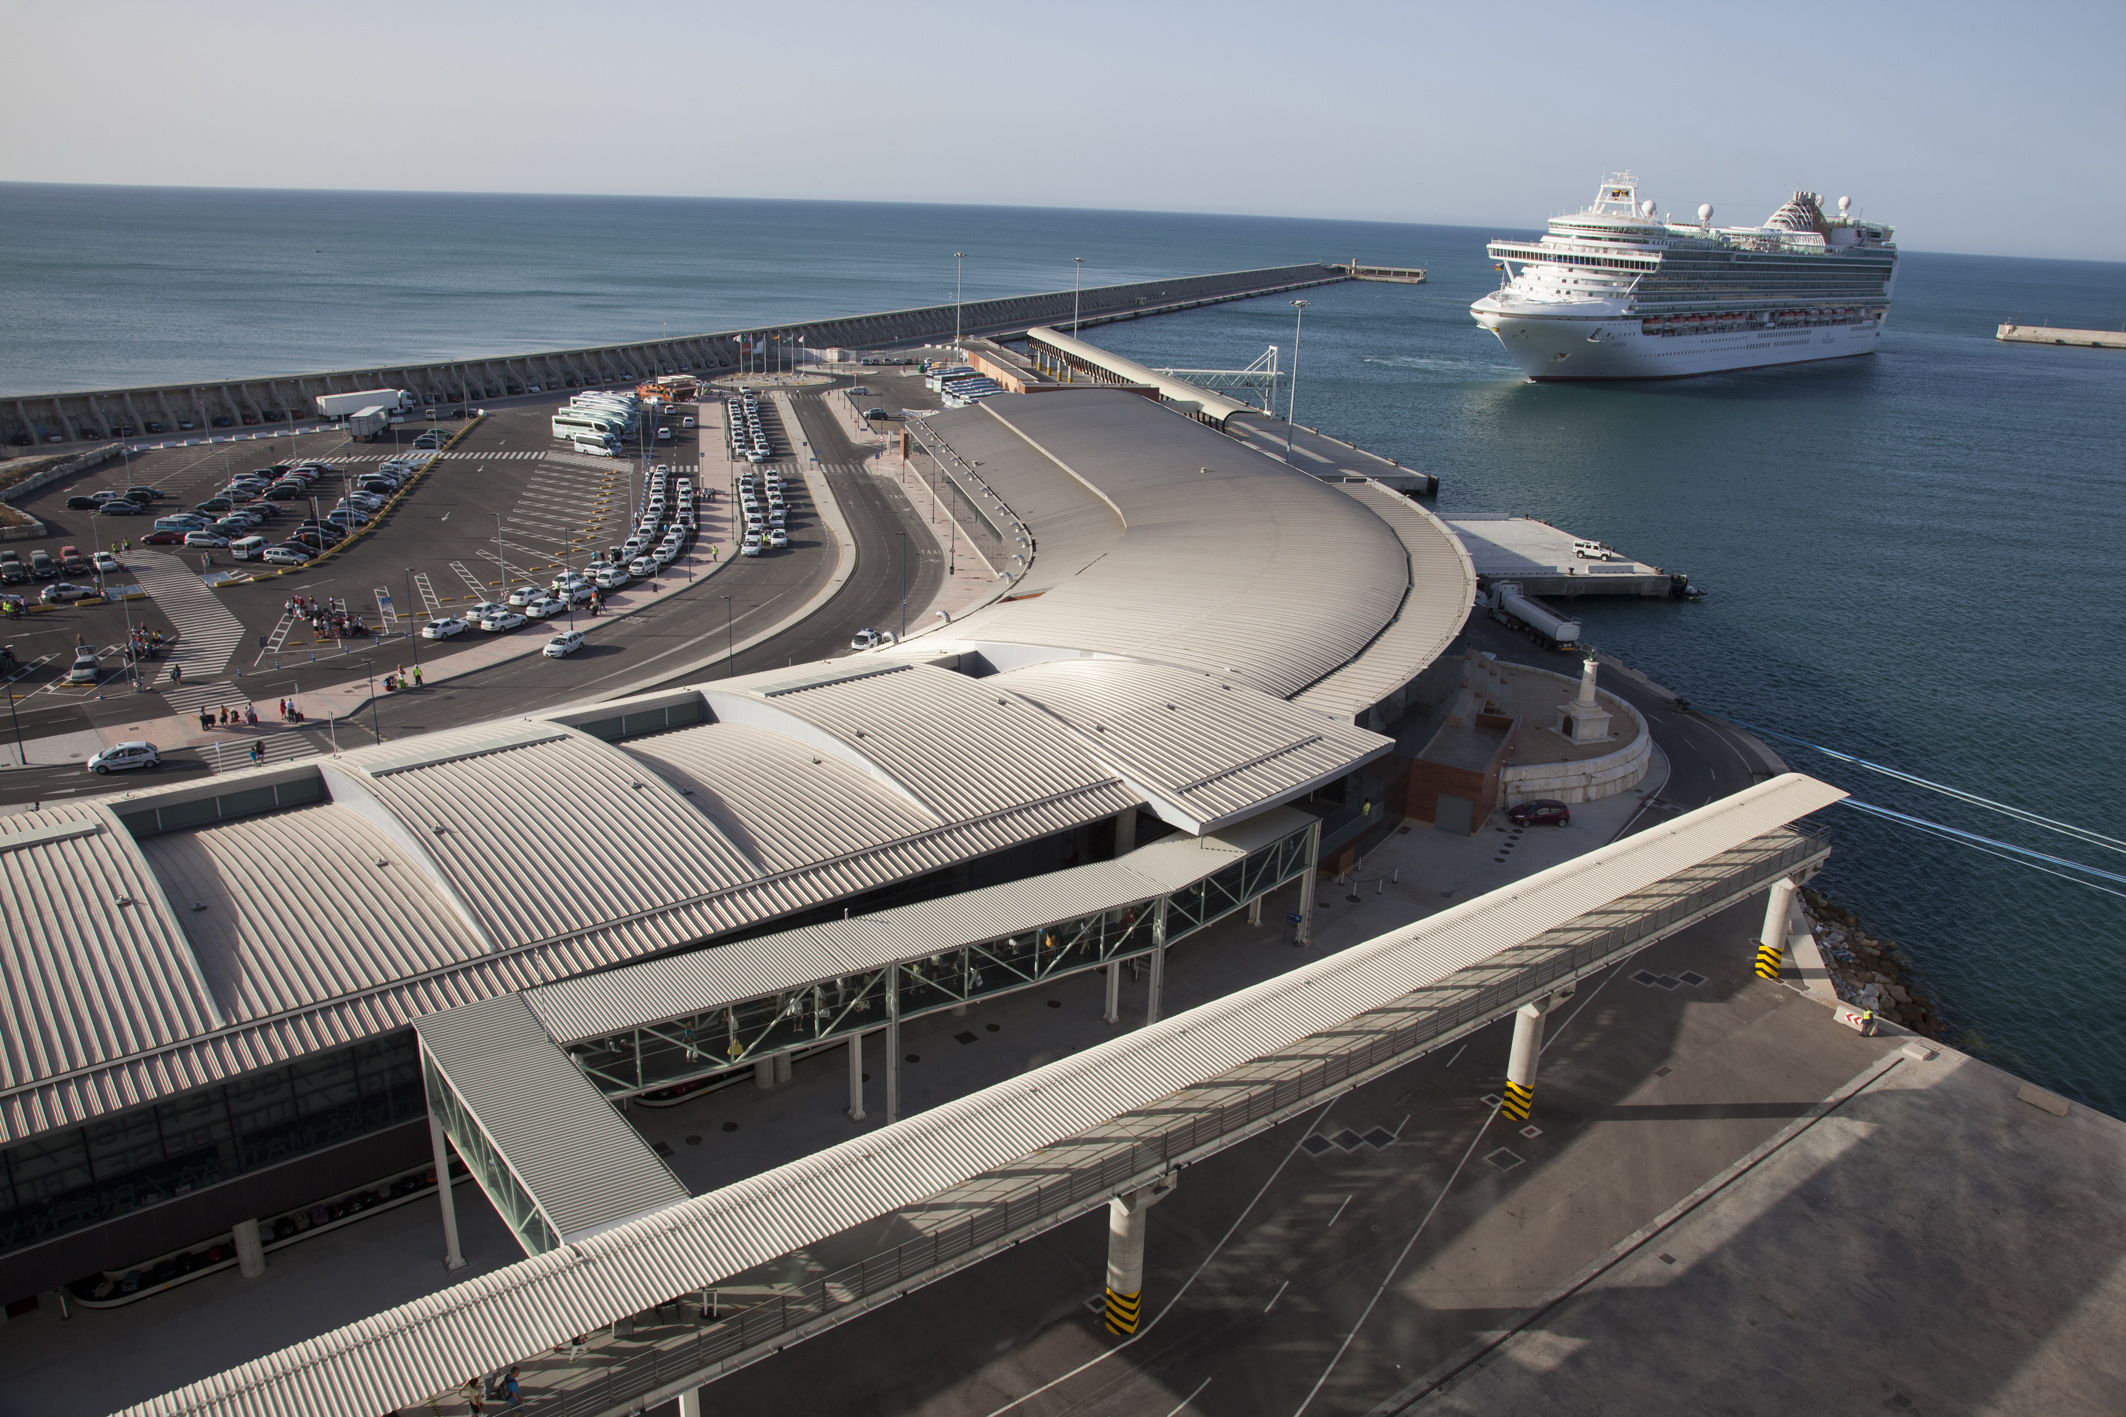 Port of Málaga ready to resume cruise traffic, following regional approval protocol